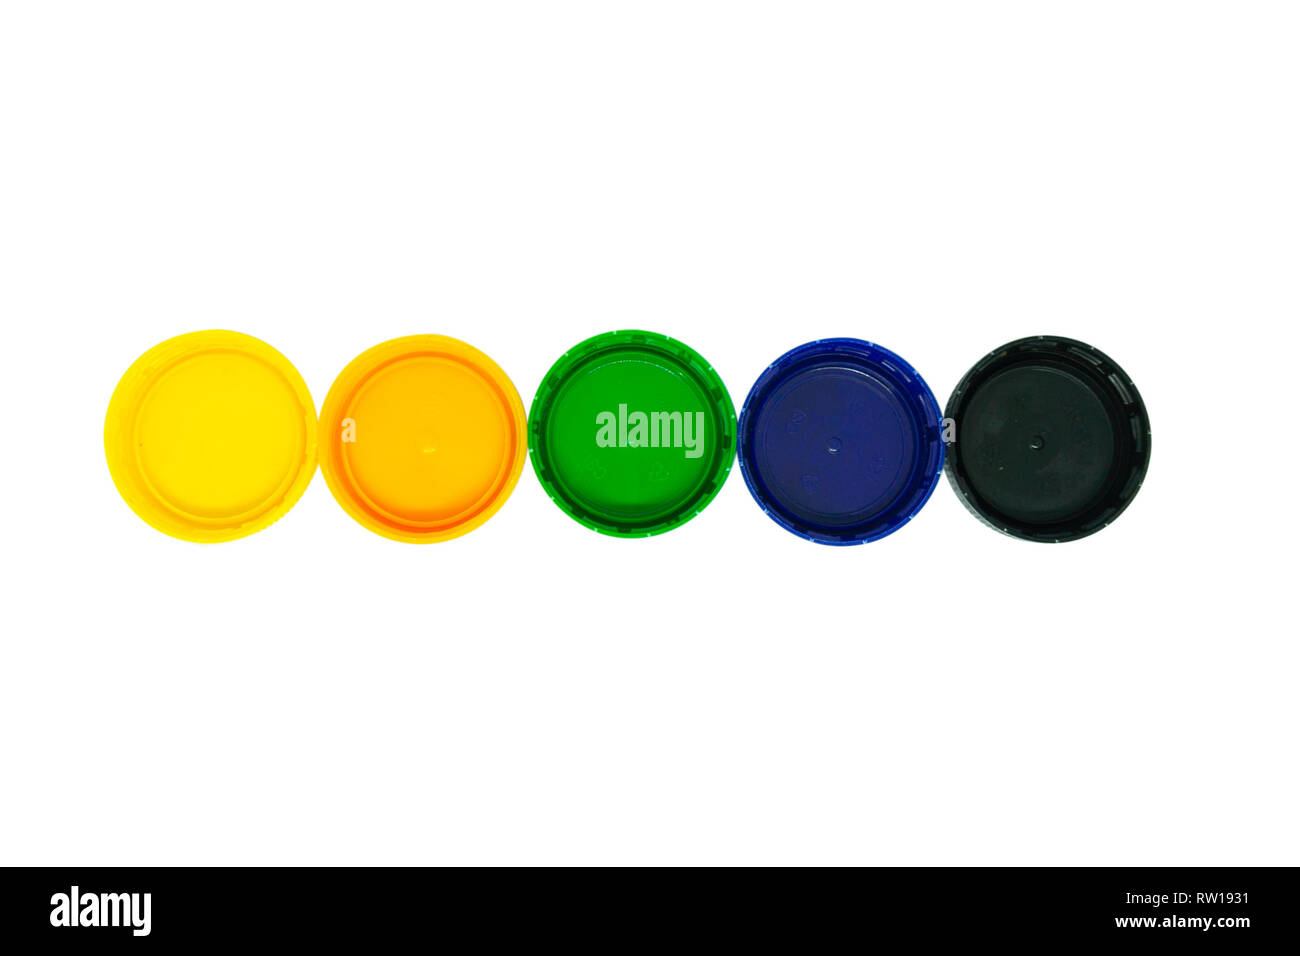 Five plastic caps isolated on white background - Stock Image